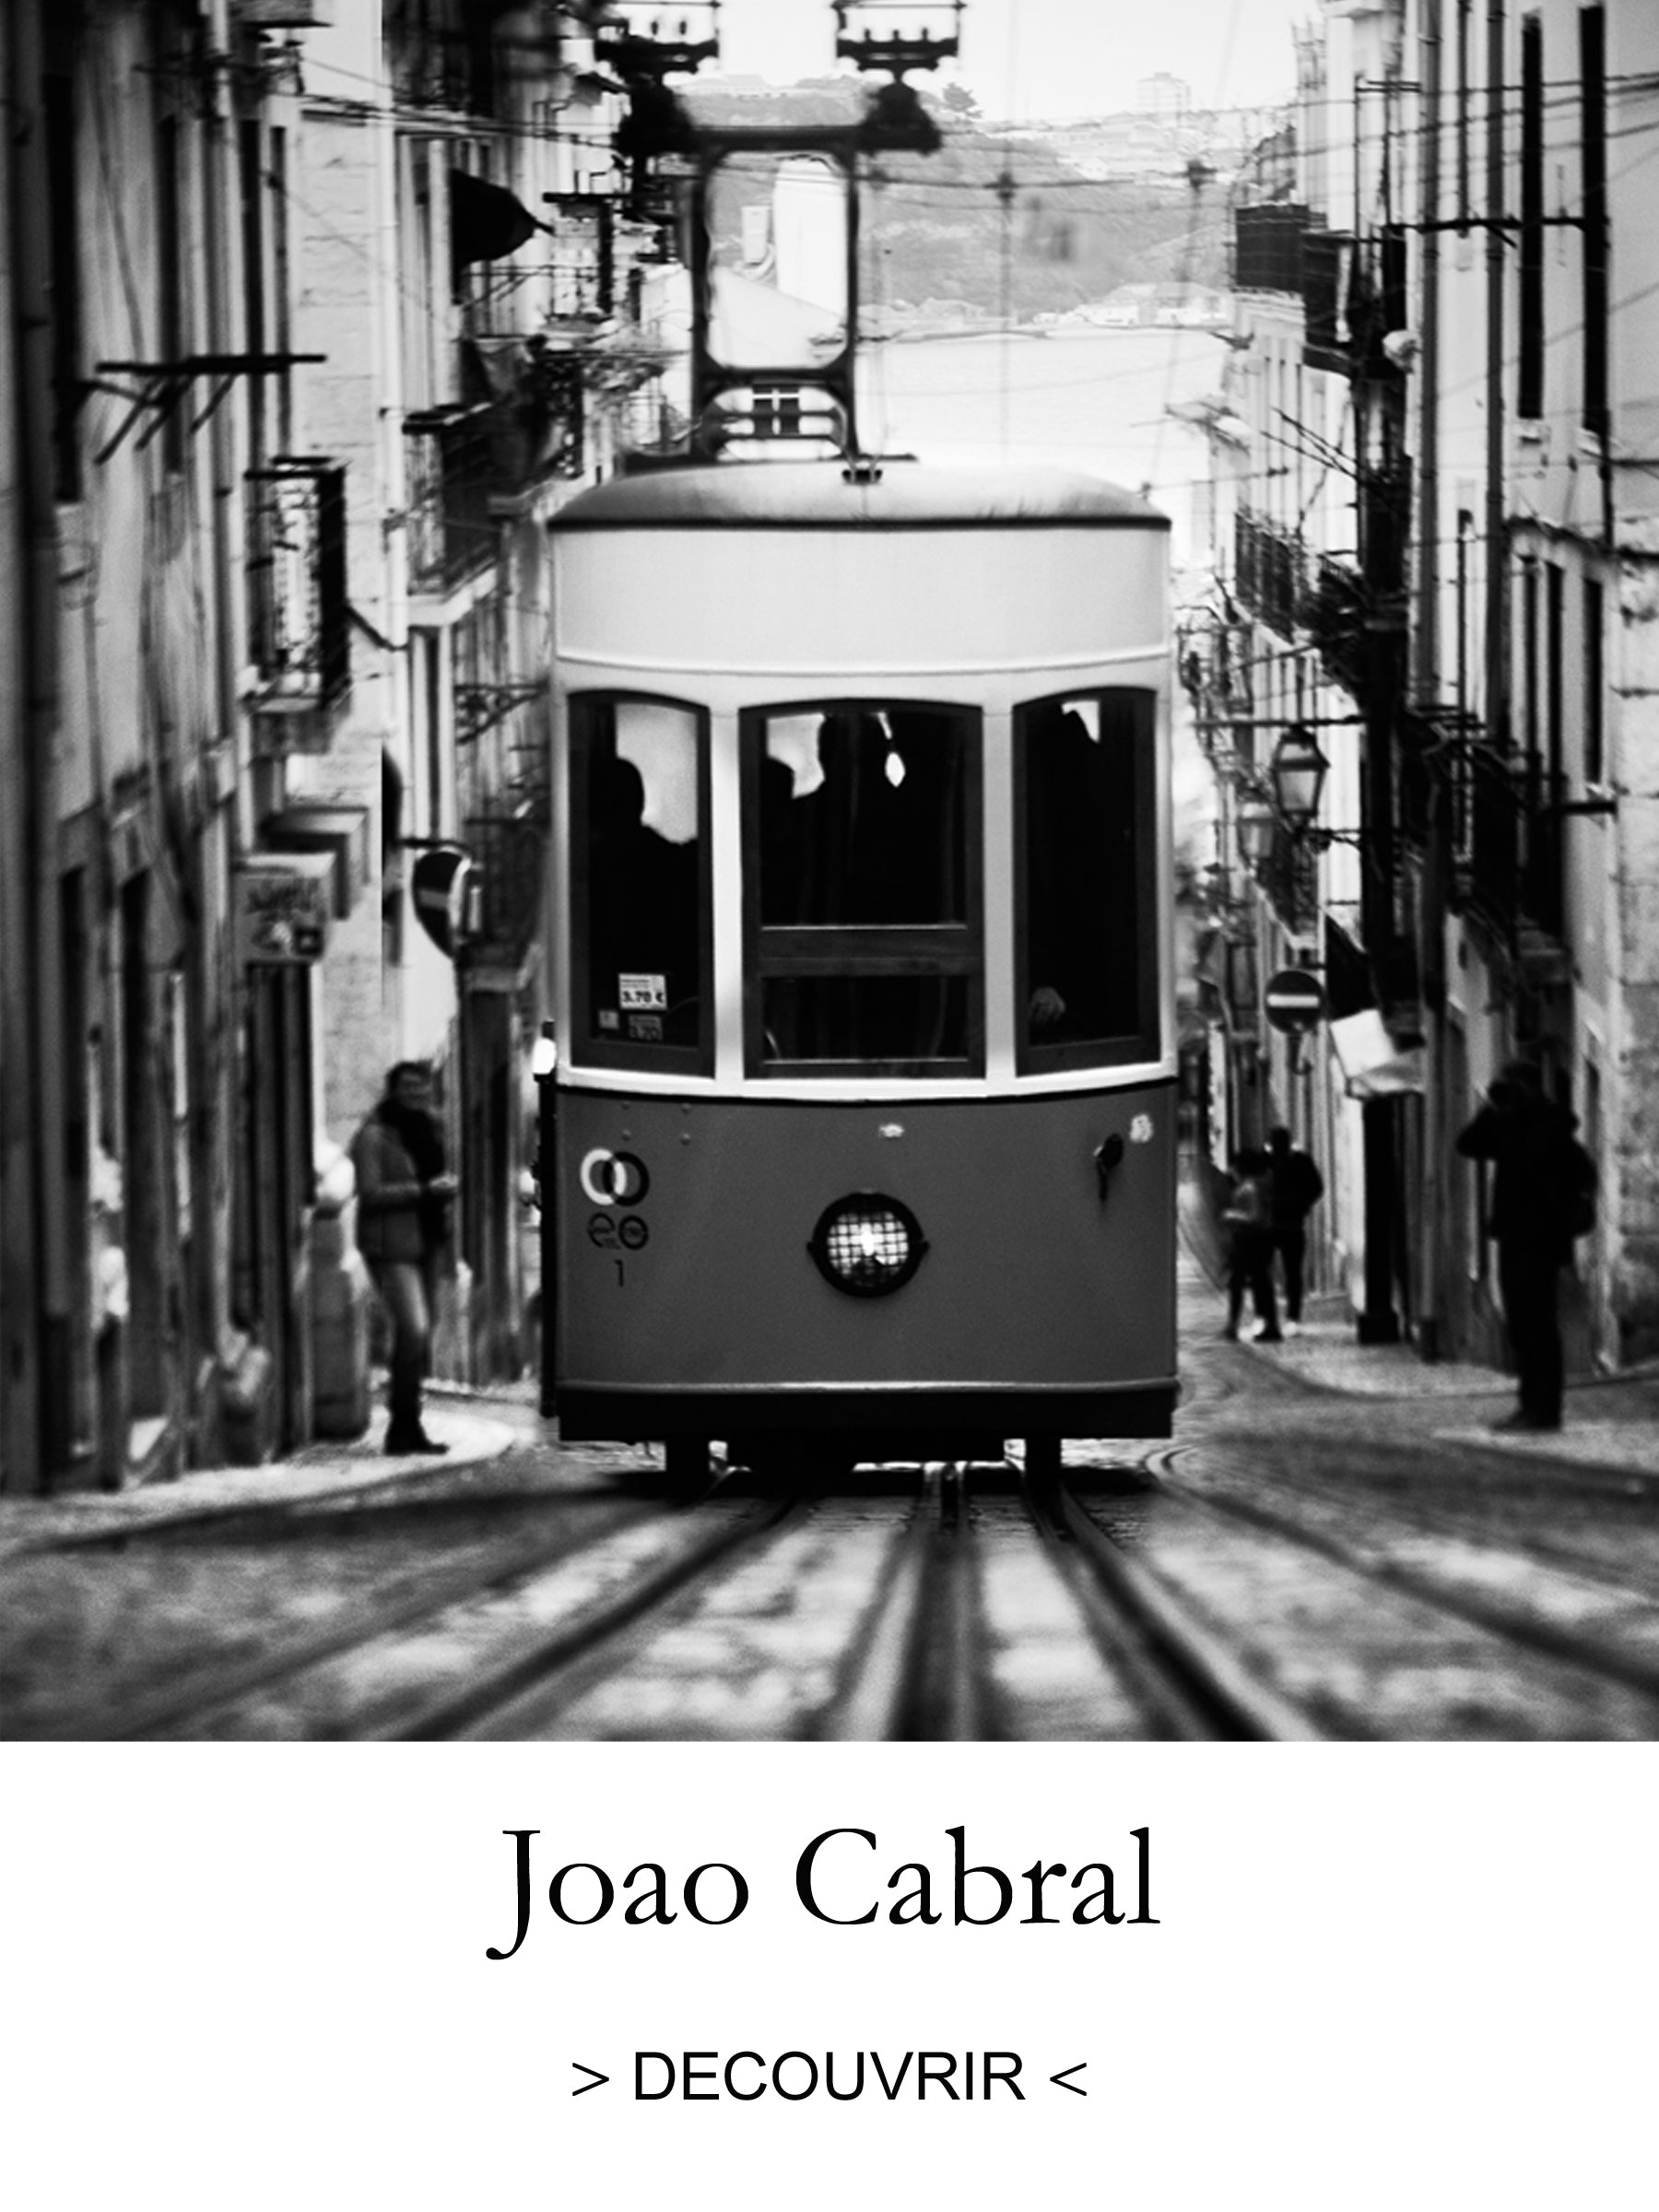 Photographies du Portugal Joao Cabral